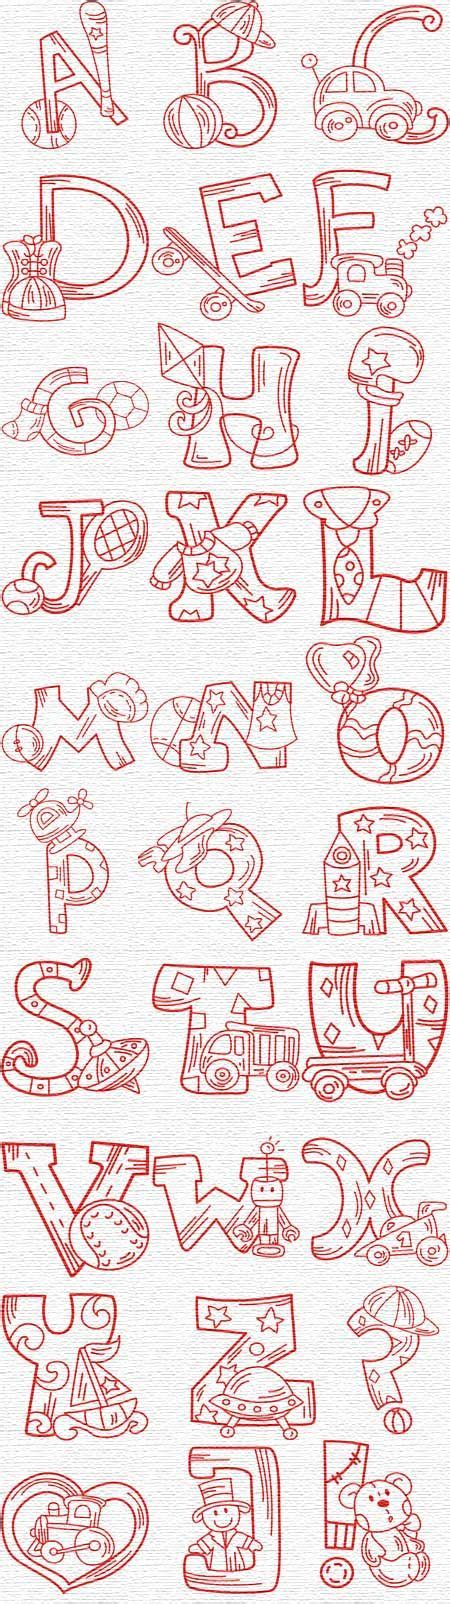 Letter Eda free embroidery designs sweet embroidery designs index